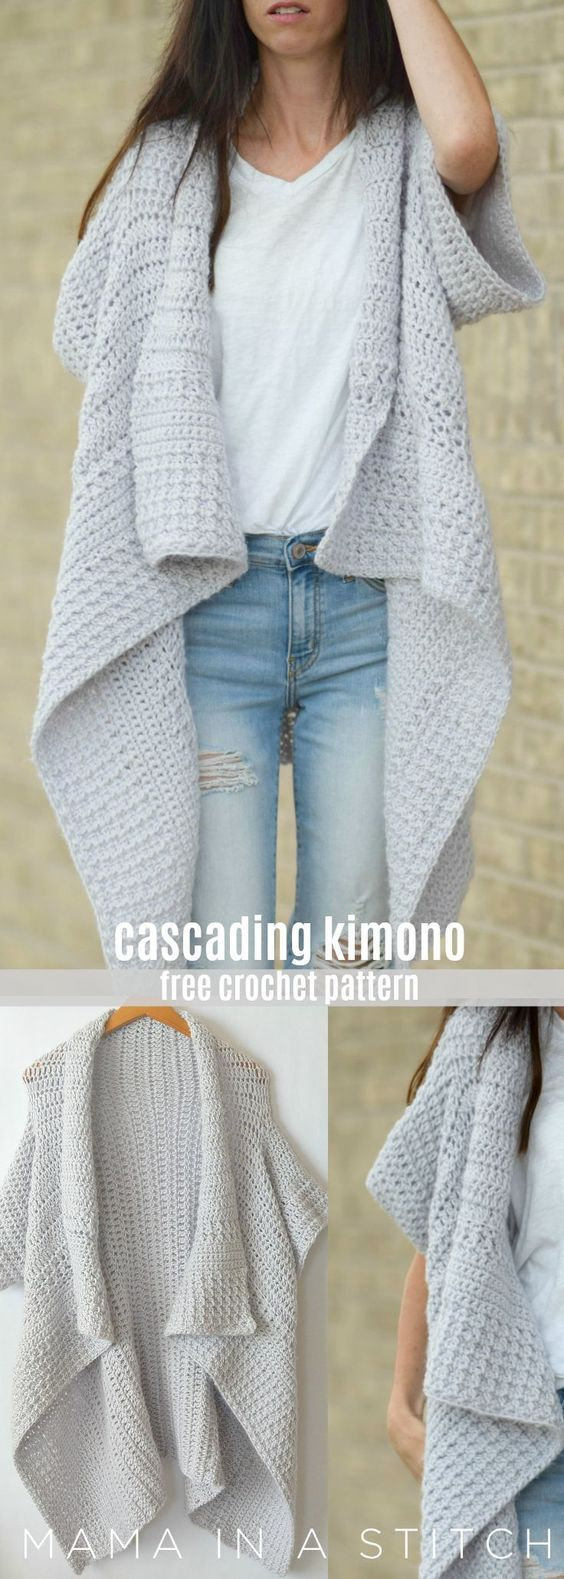 This super easy crocheted kimono is so pretty. A simple, free pattern includes photos on how it's assembled. Perfect addition to your fall wardrobe!